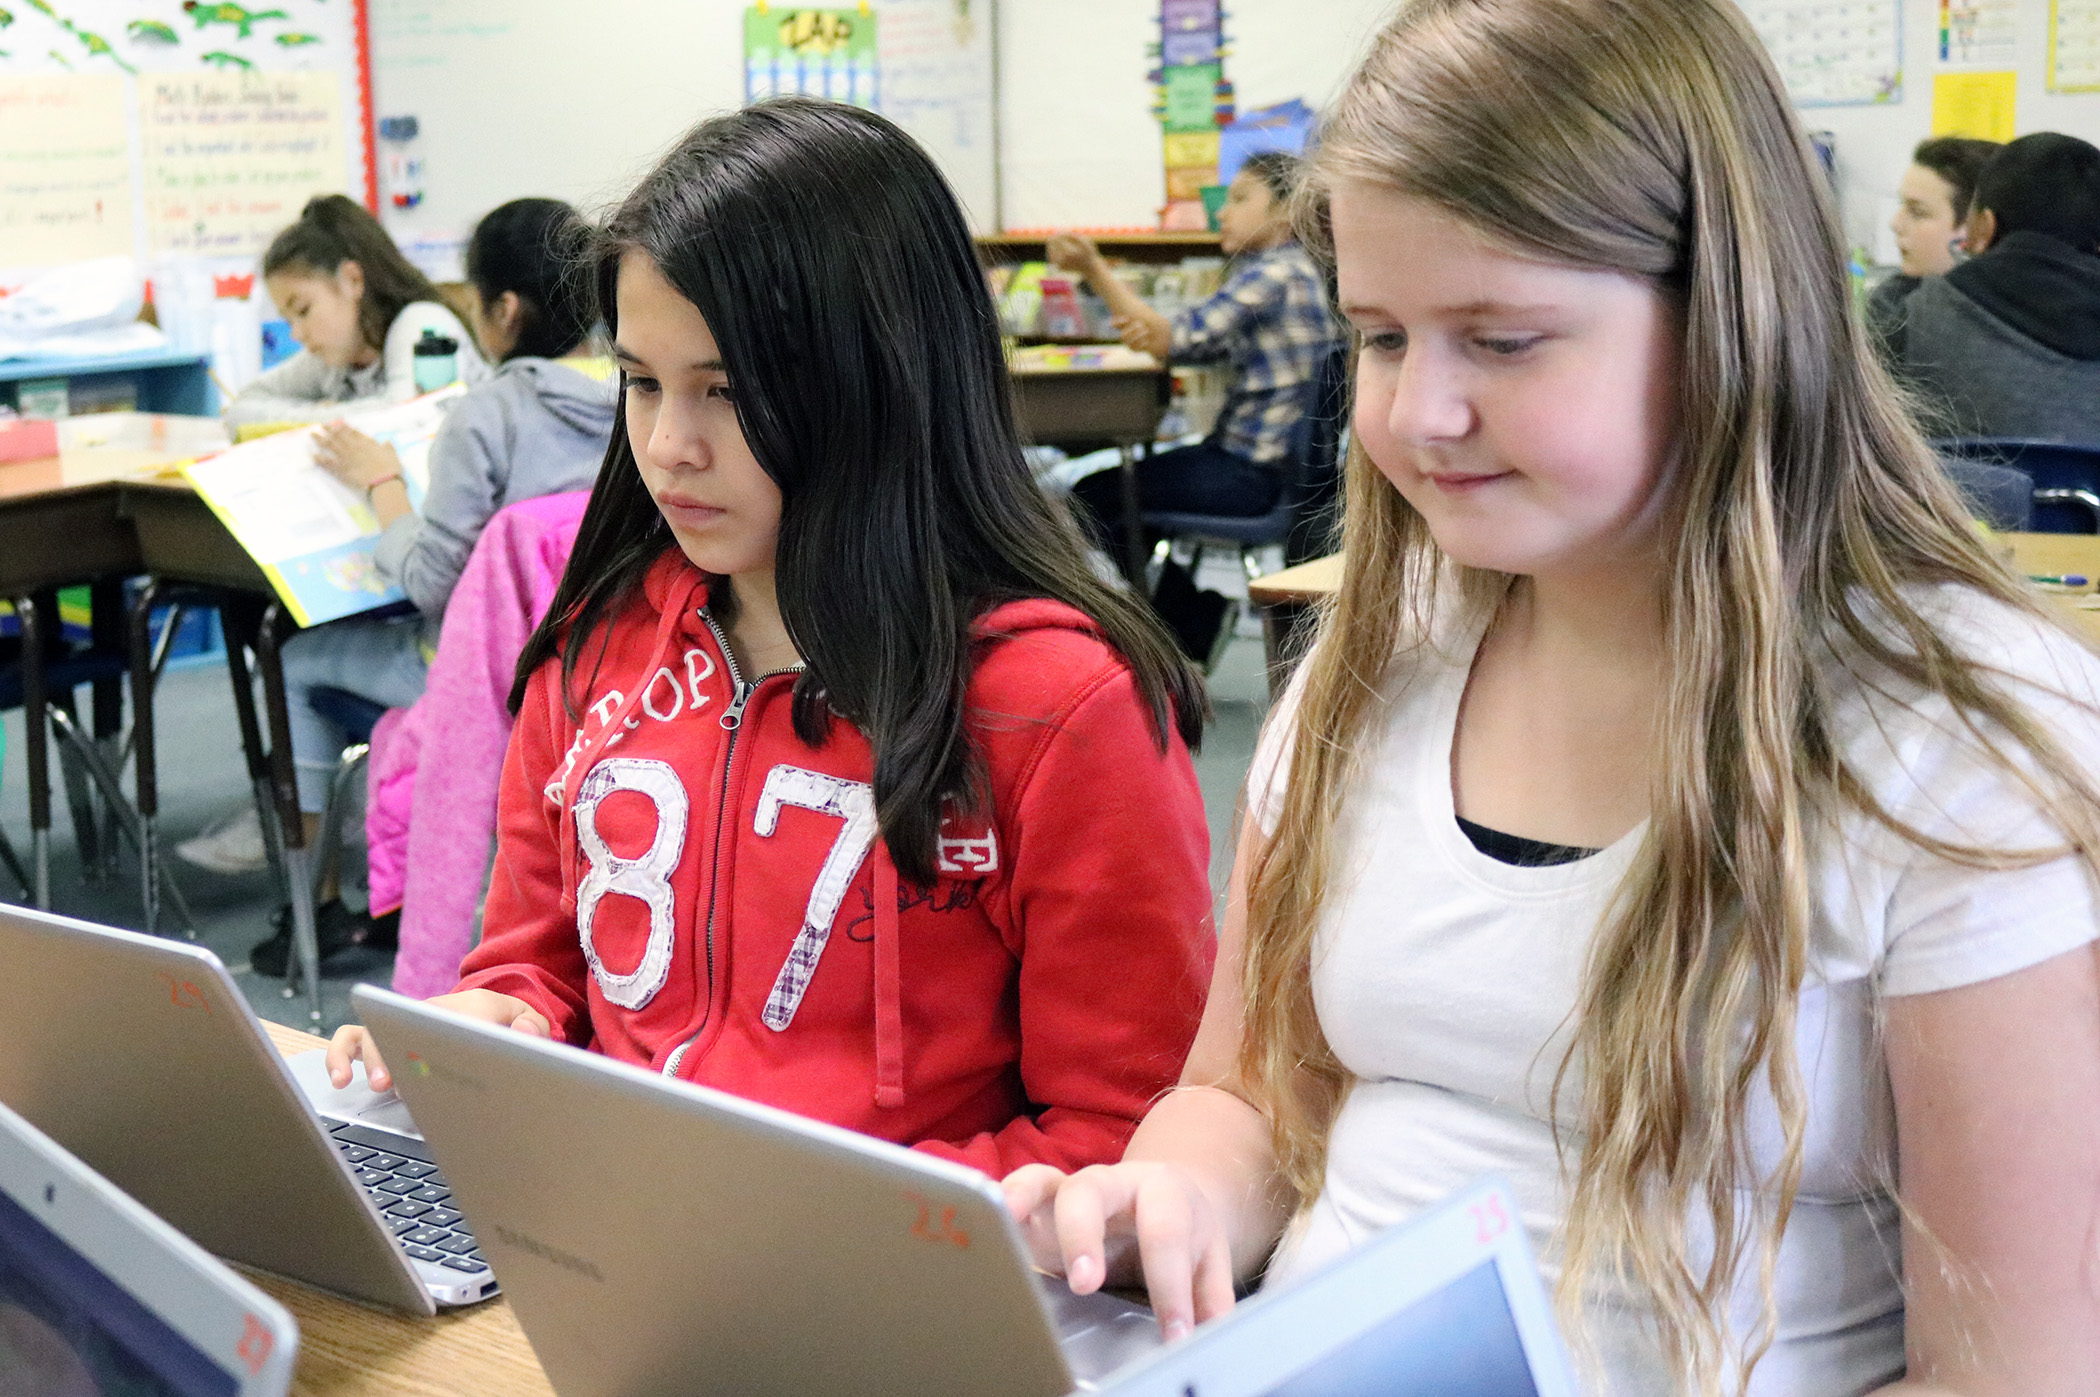 Fifth grade students conduct research on Chromebooks